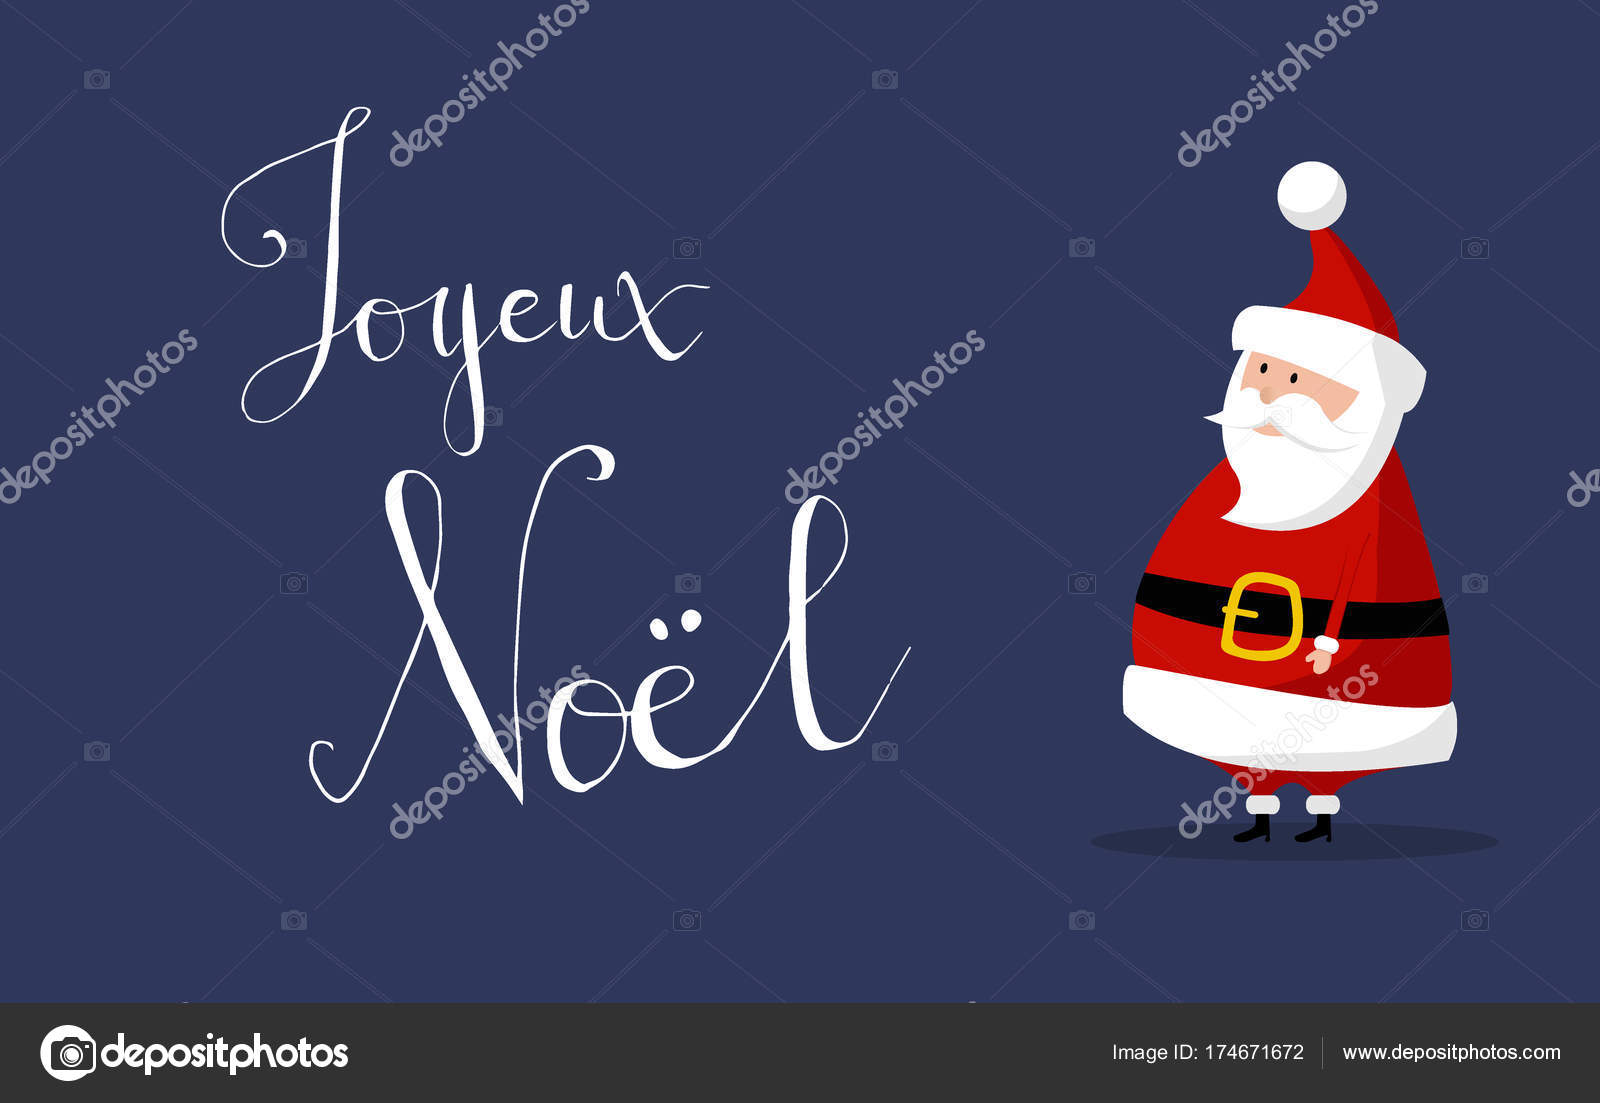 basic santa claus vector with merry christmas wishes as joyeux noel in french language on the right classic santa in red suit good for flyer card - How To Say Merry Christmas In French